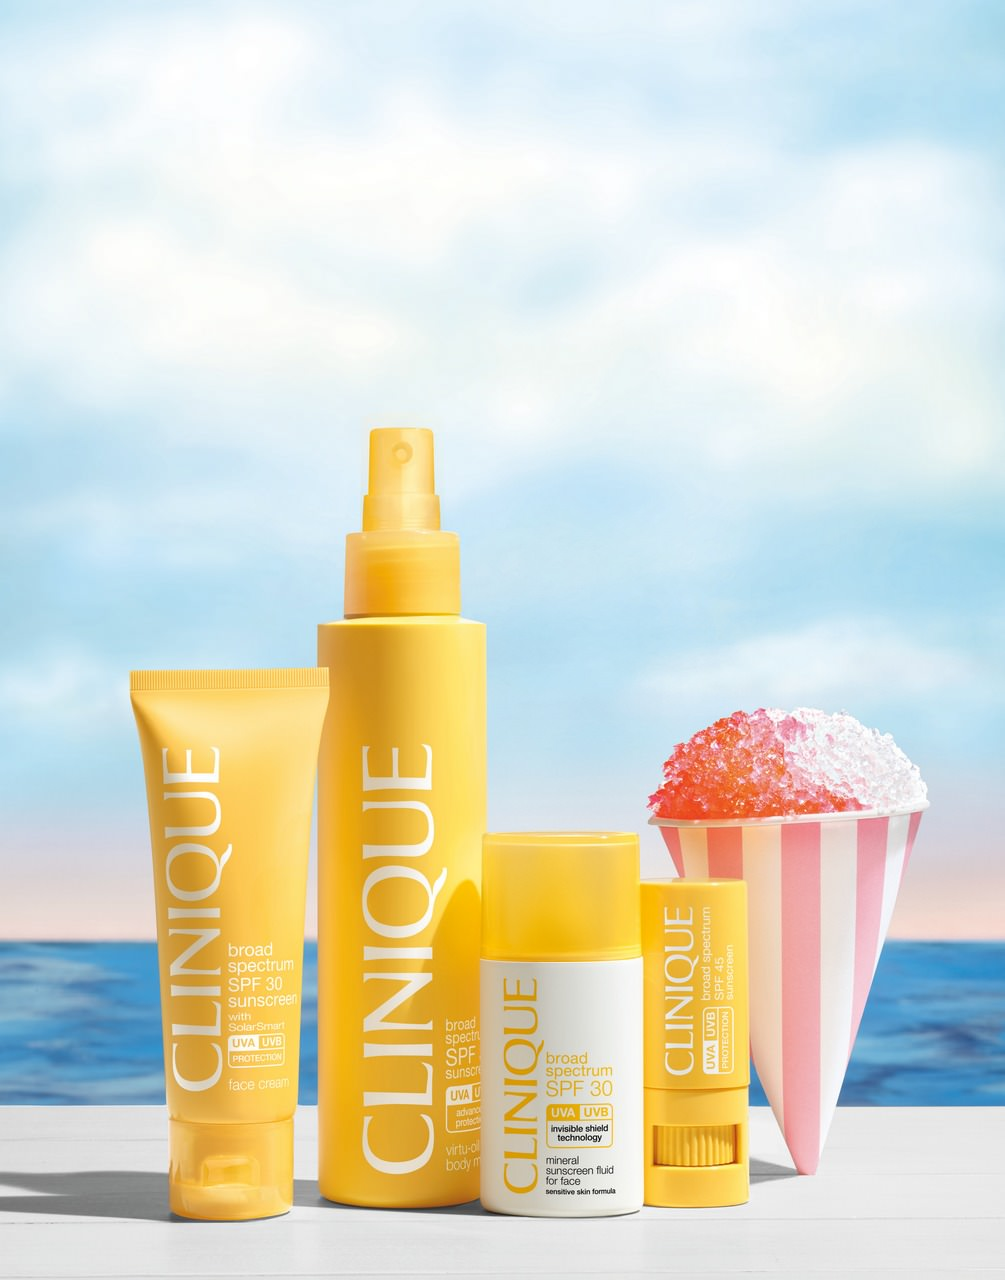 Clinique Sunscreen, Photo by Joanna McClure